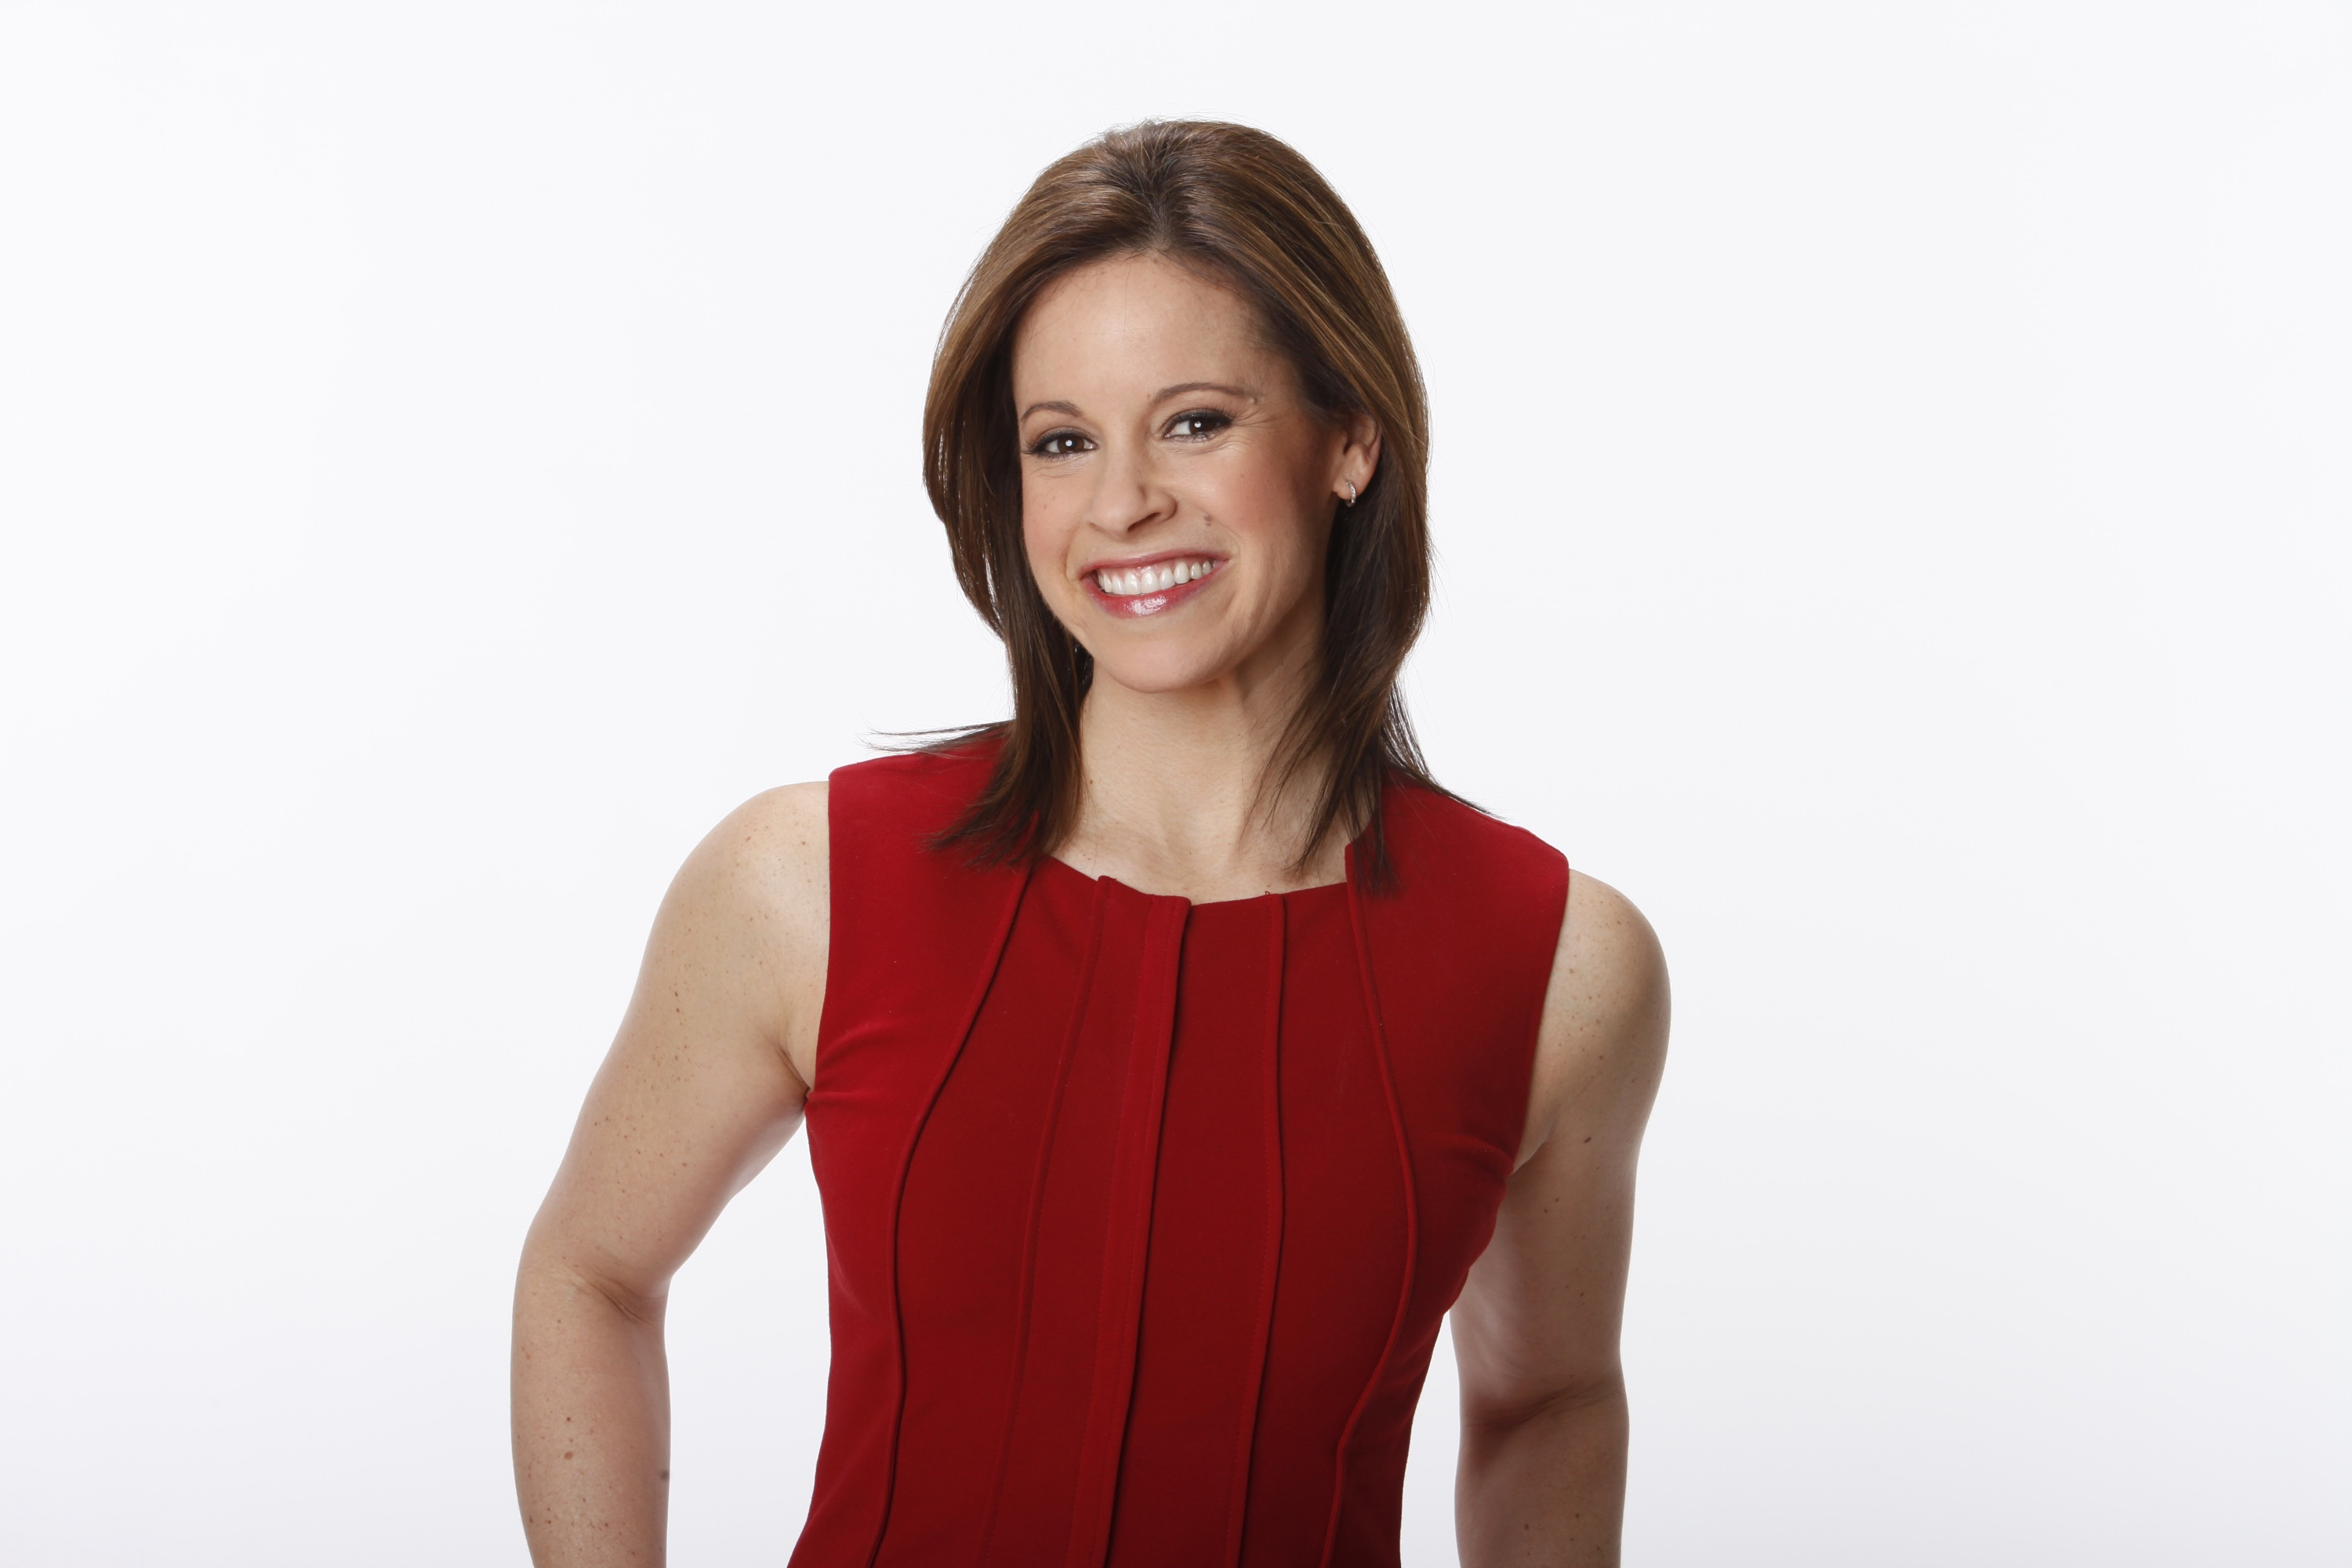 Fitness And Health Journalist Jenna Wolfe To Receive Idea Jack